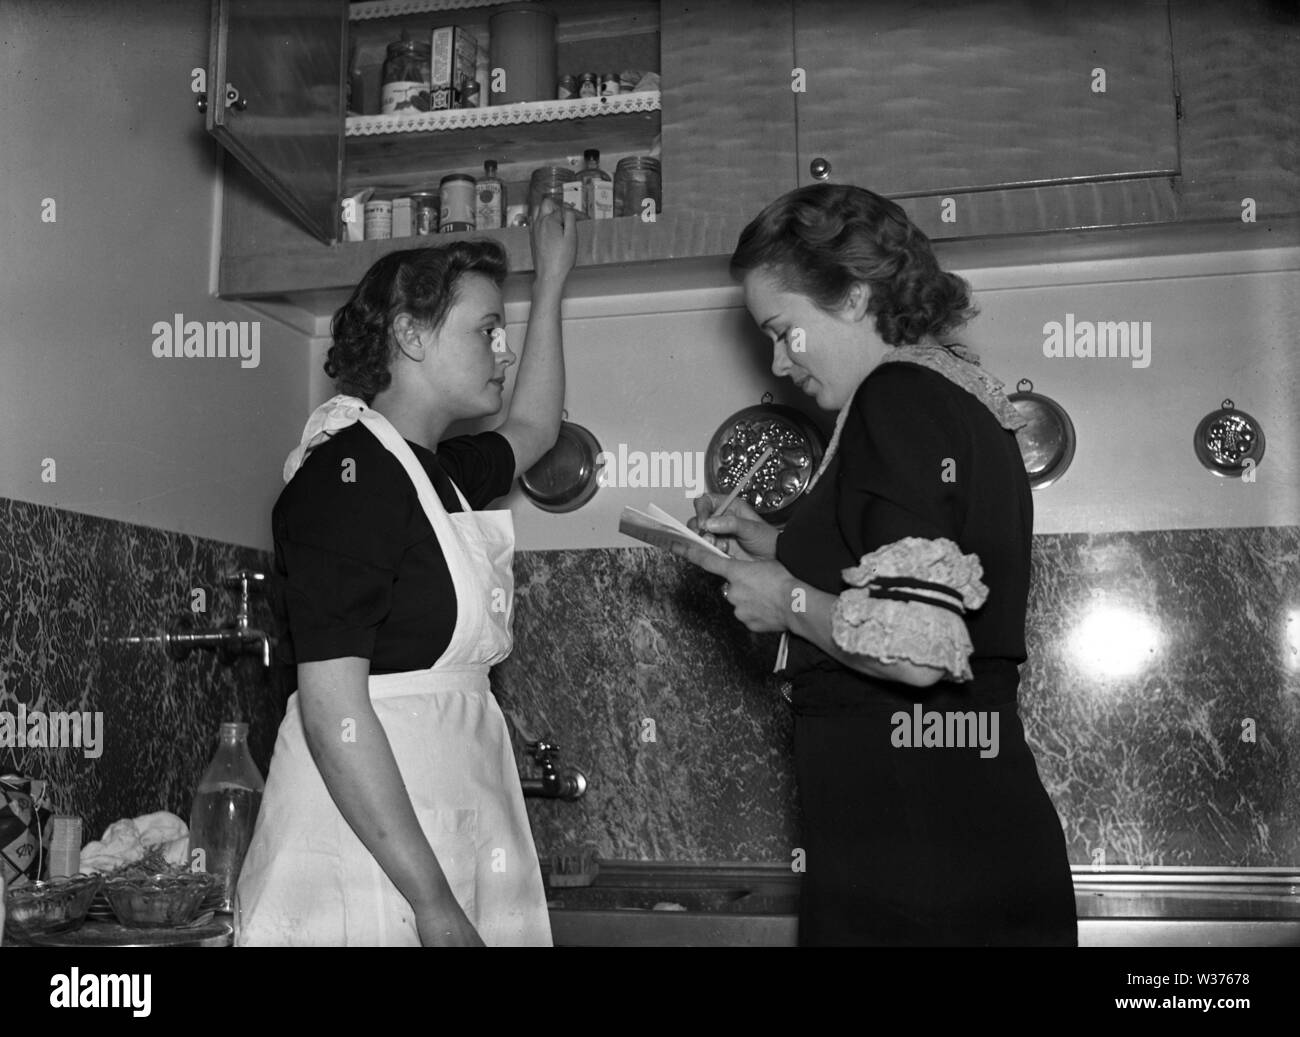 Living in the 1940s. A young woman working as a maid with the housewife  who writes a list of things to do and what to buy. Sweden 1940. Kristoffersson ref 55-6 - Stock Image